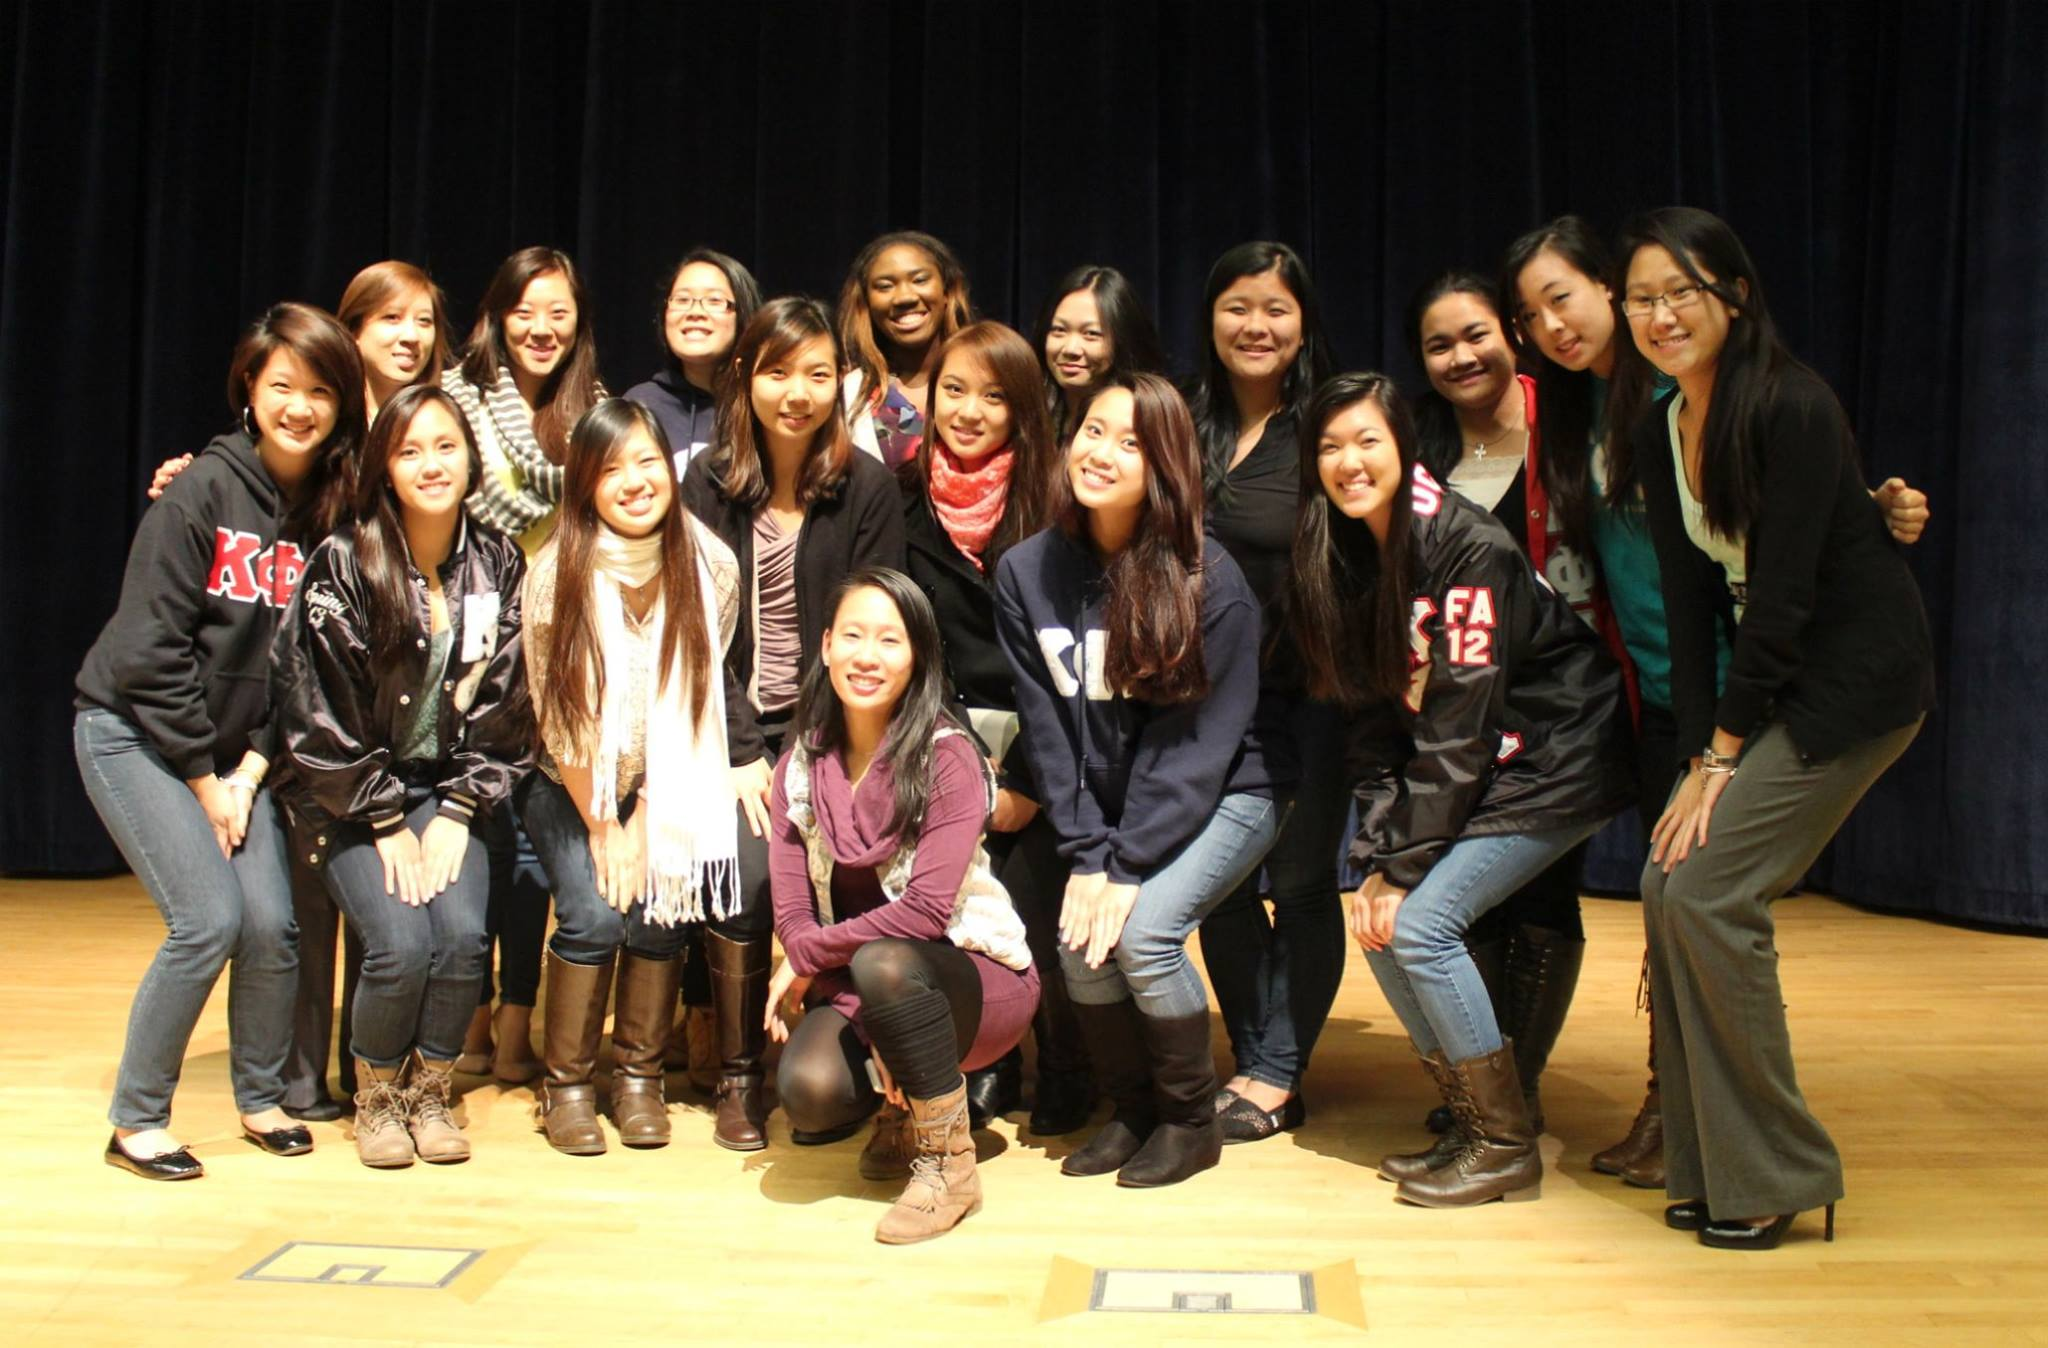 UConn Sisters with Kelly Tsai